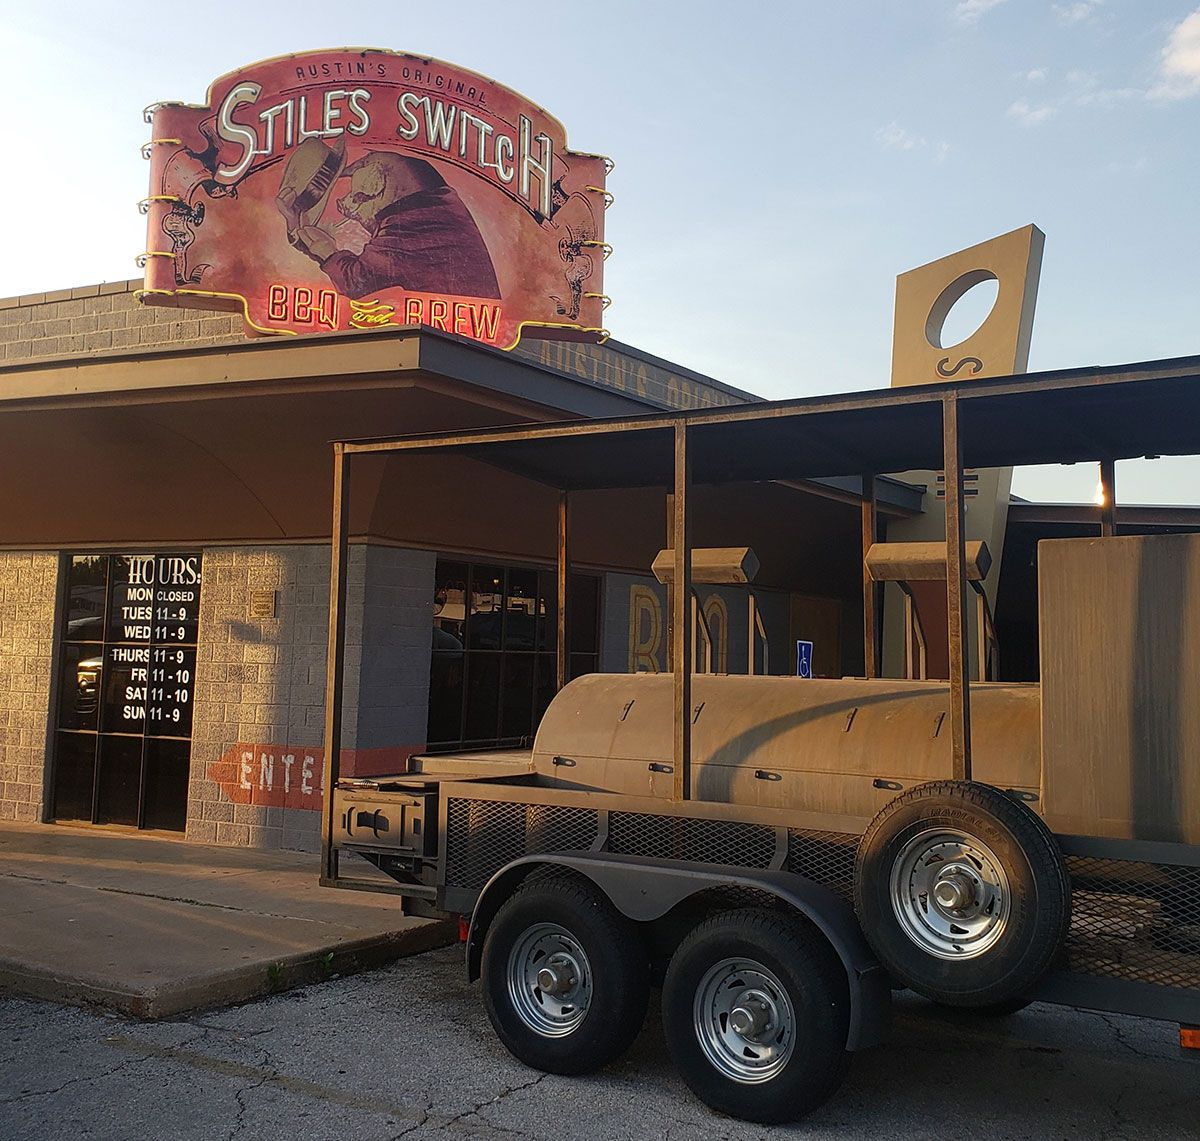 Stiles Switch BBQ - Austin, Texas Commercial HVAC Contractor